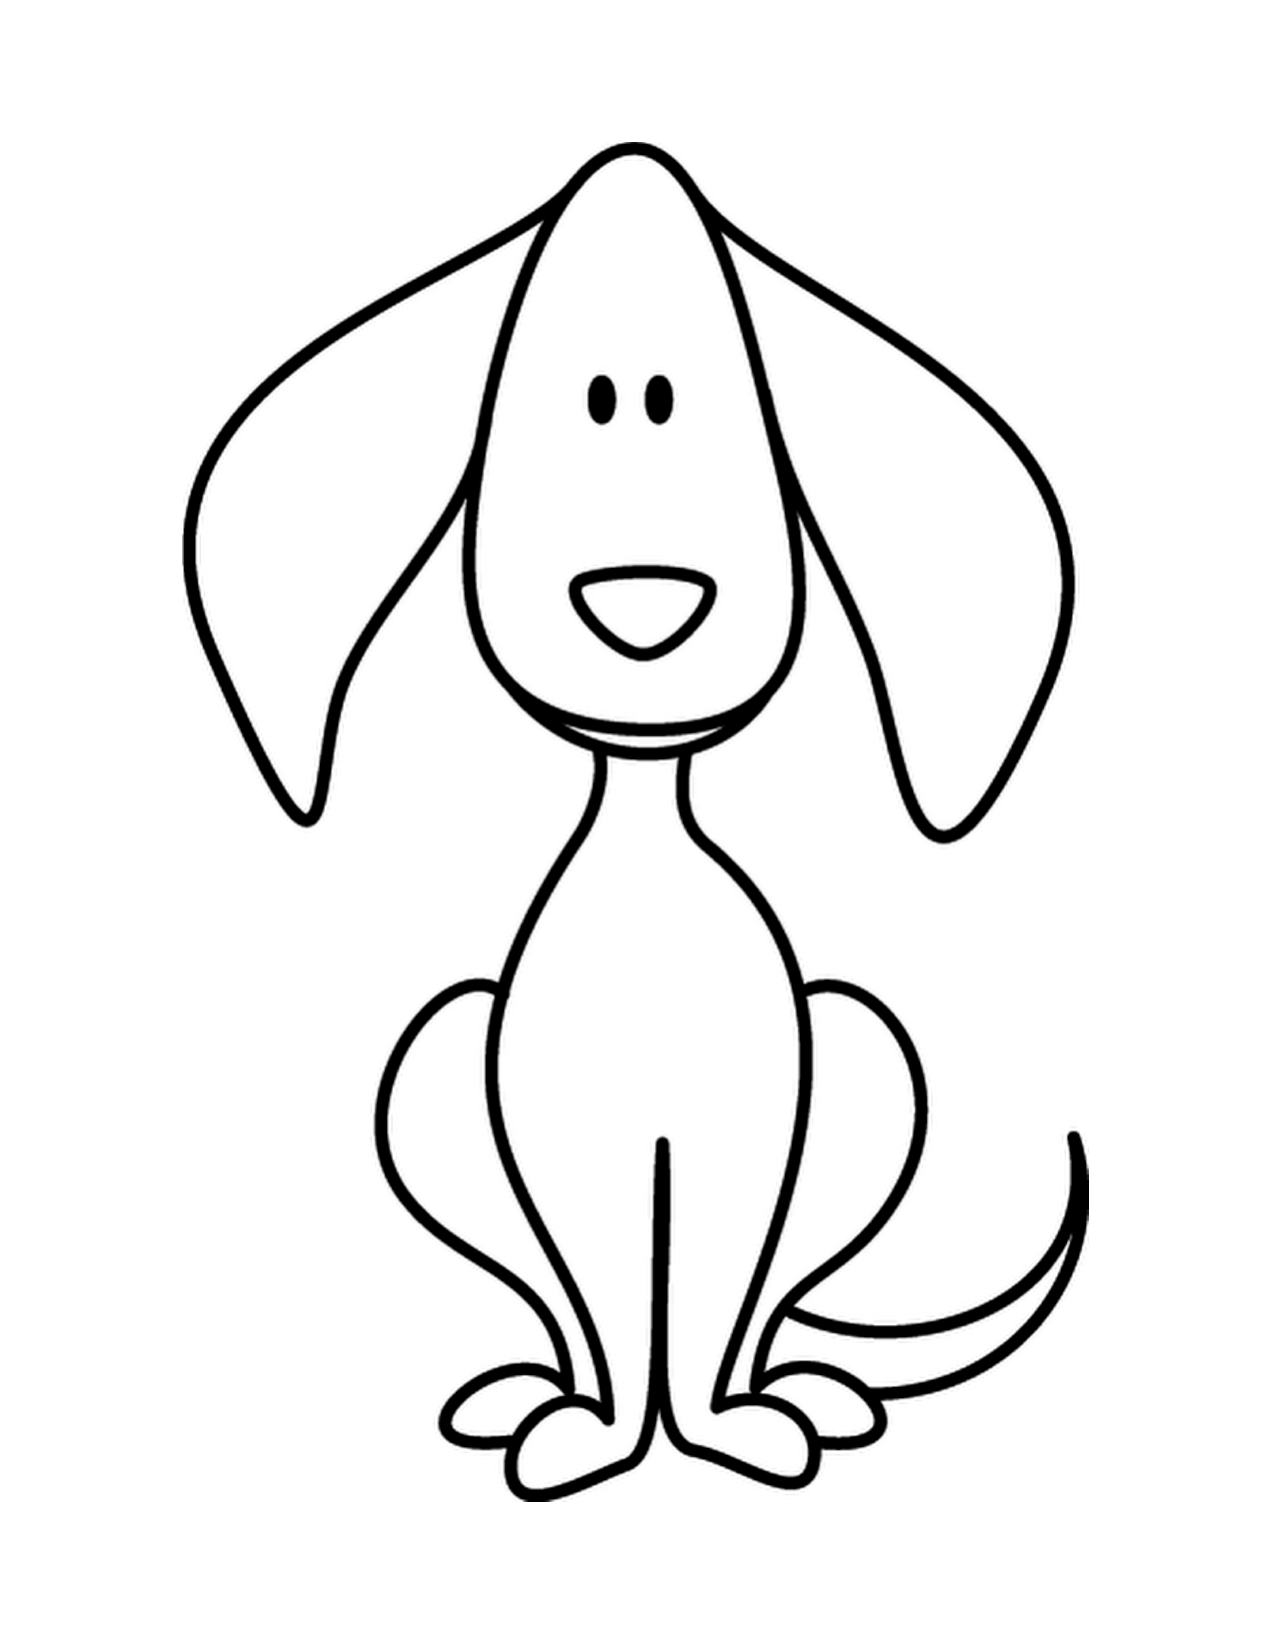 1275x1650 Husky Puppy Coloring Pages Cute Puppy Coloring Pages Printablejpg